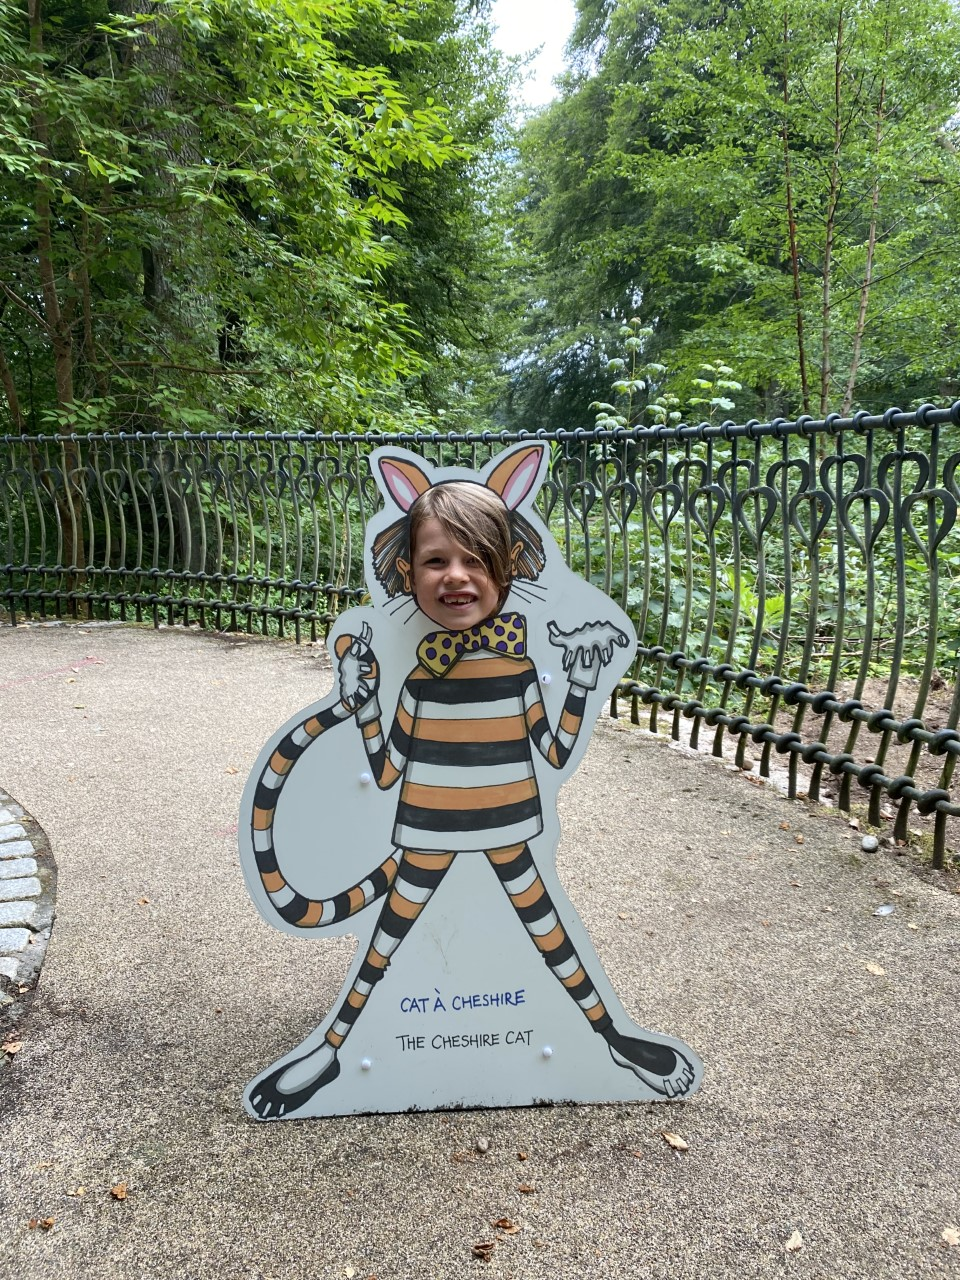 ALice in Wonderland at Pitlochry festival theatre